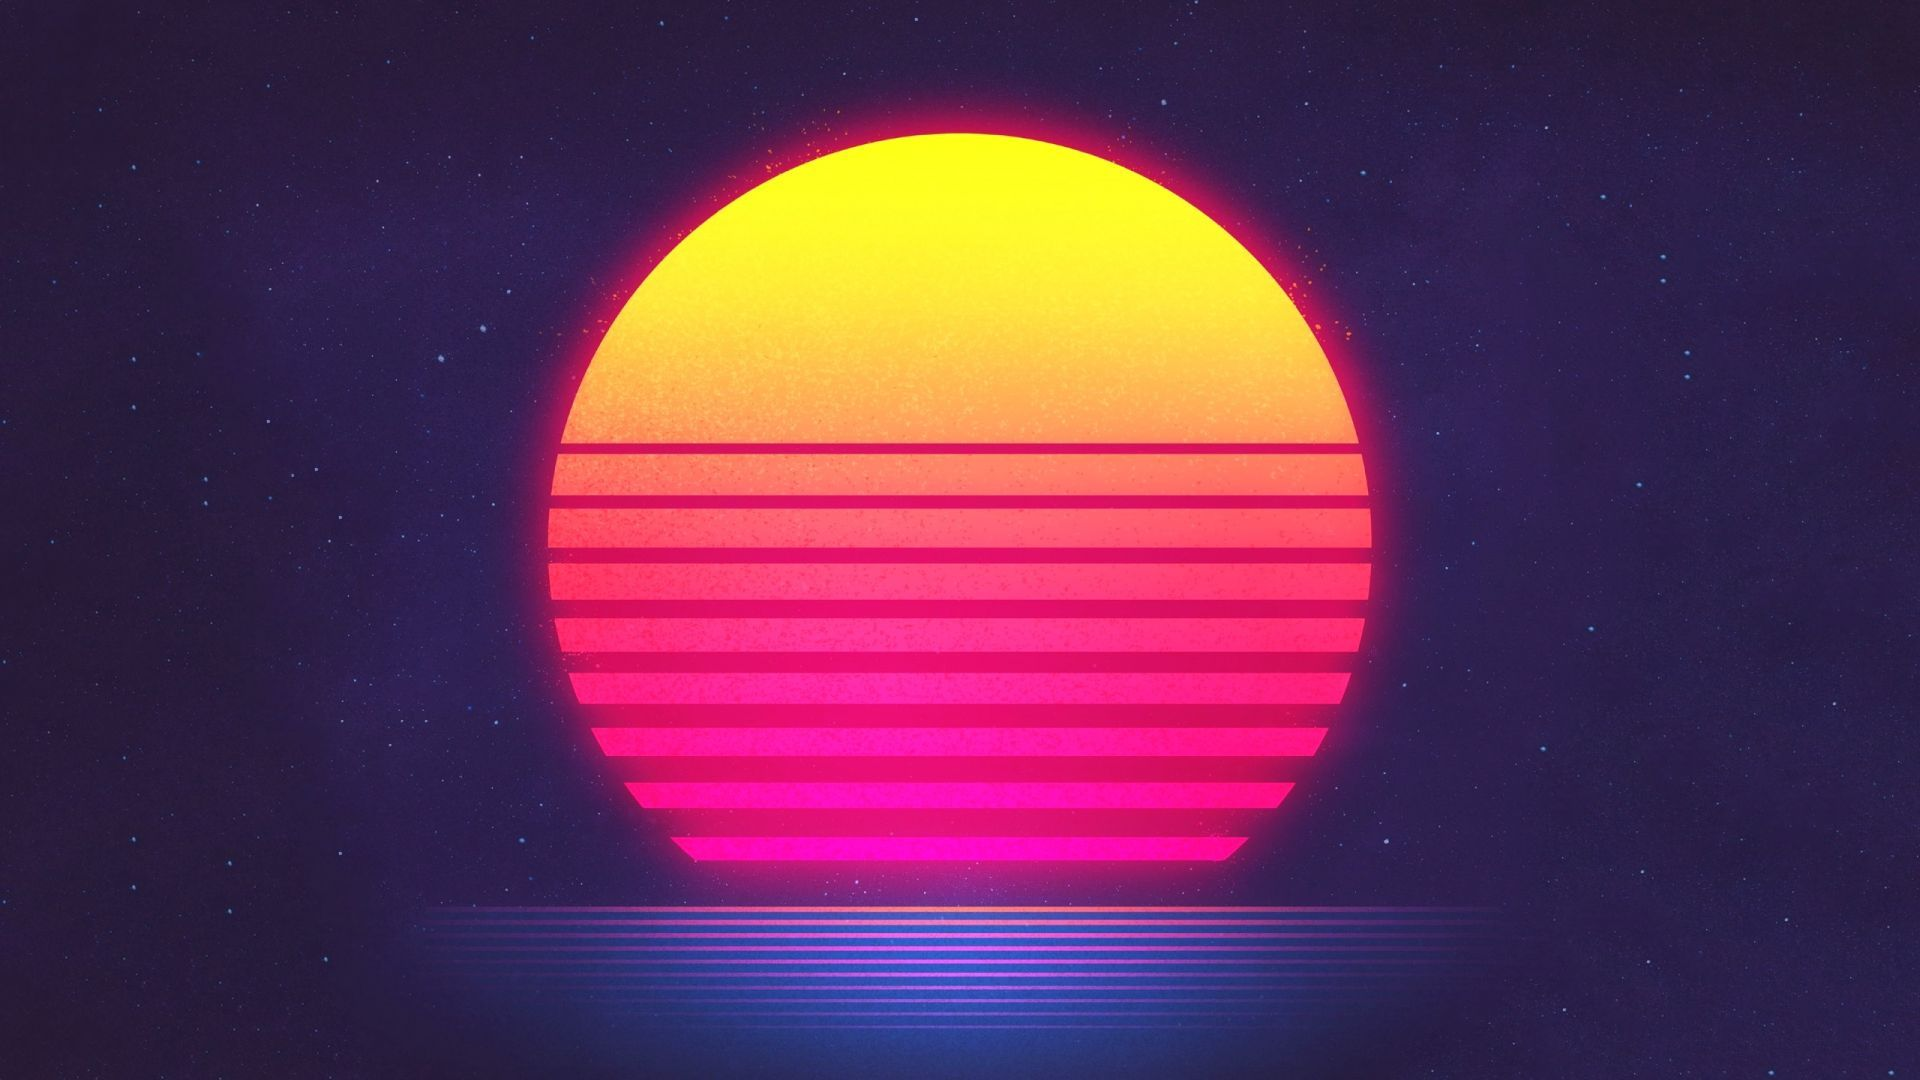 Sunset Retrowave Synthwave Hd Retro Waves Sun Illustration Synthwave